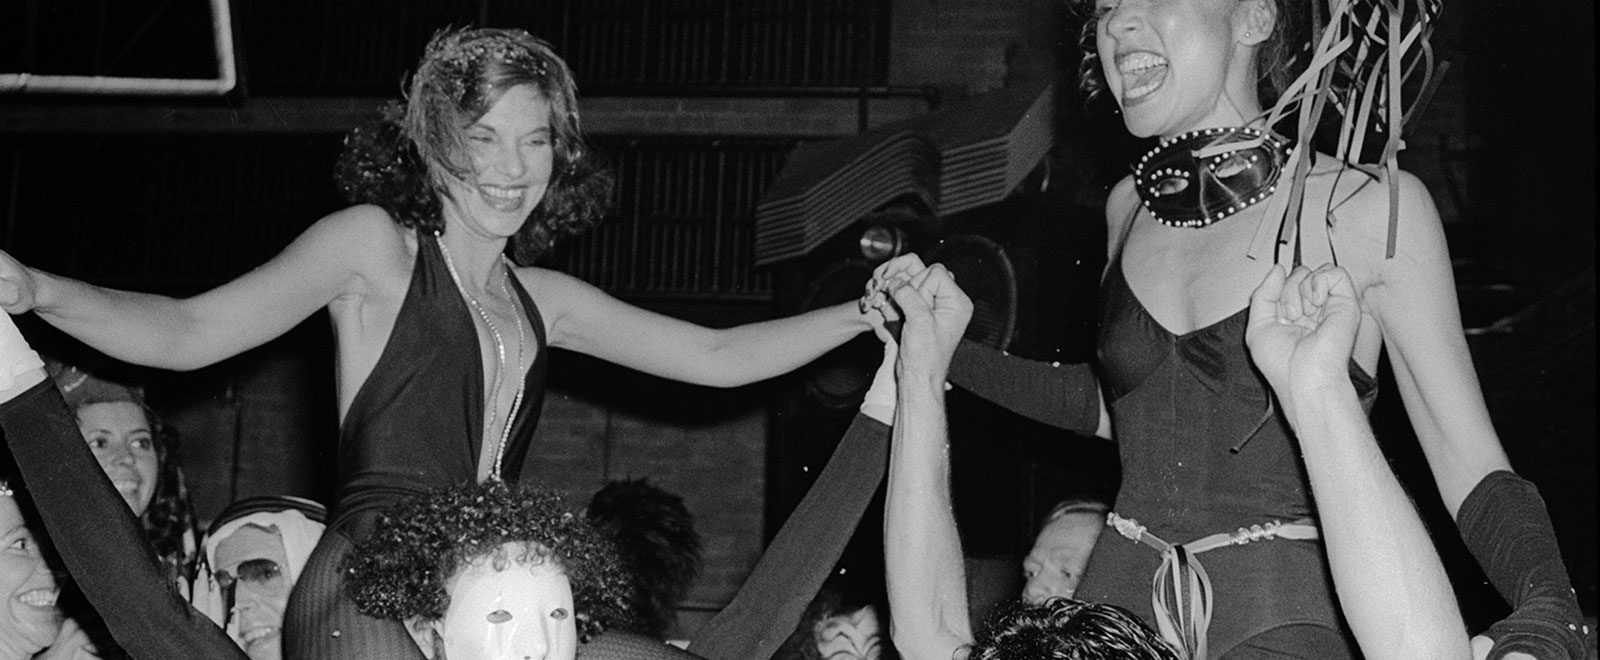 Allan Tannenbaum Studio 54 Halloween New York City Downtown